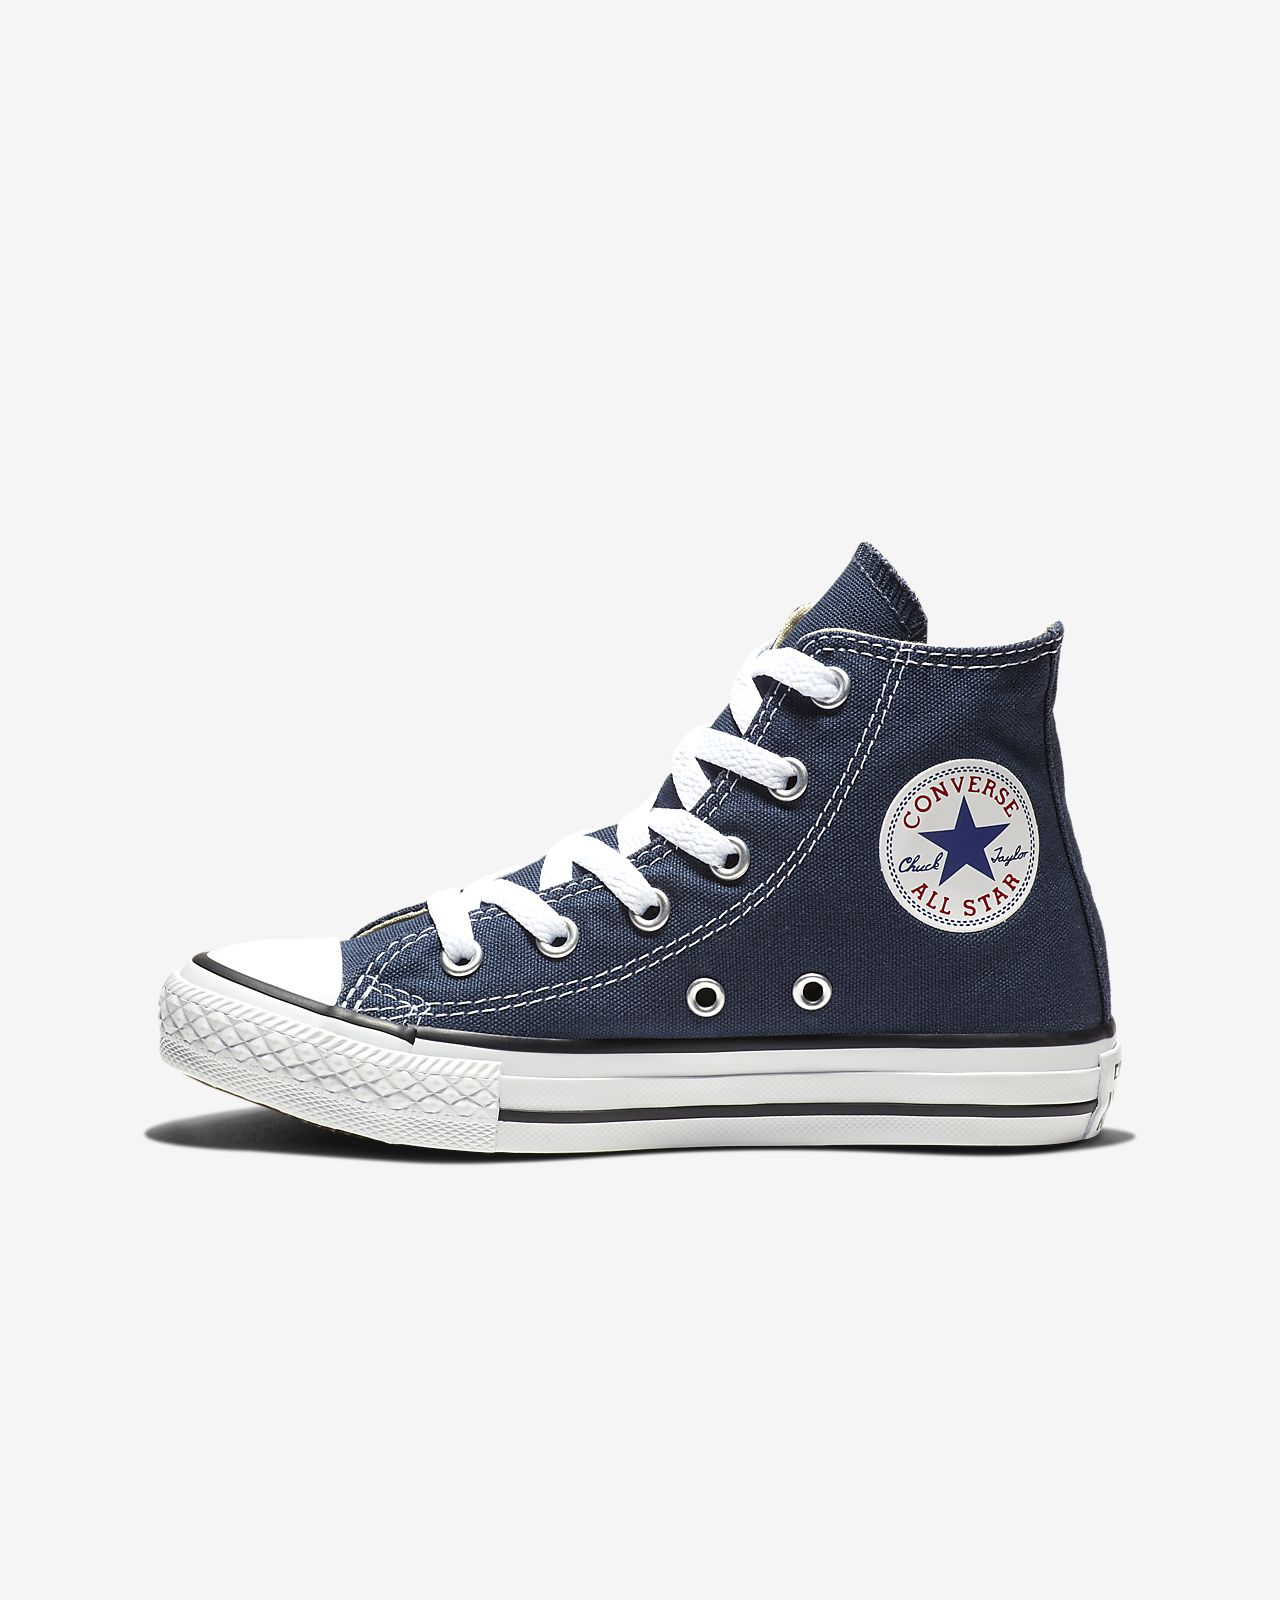 6ce0edd32b34 Converse Chuck Taylor All Star High Top (10.5c-3y) Little Kids  Shoe ...